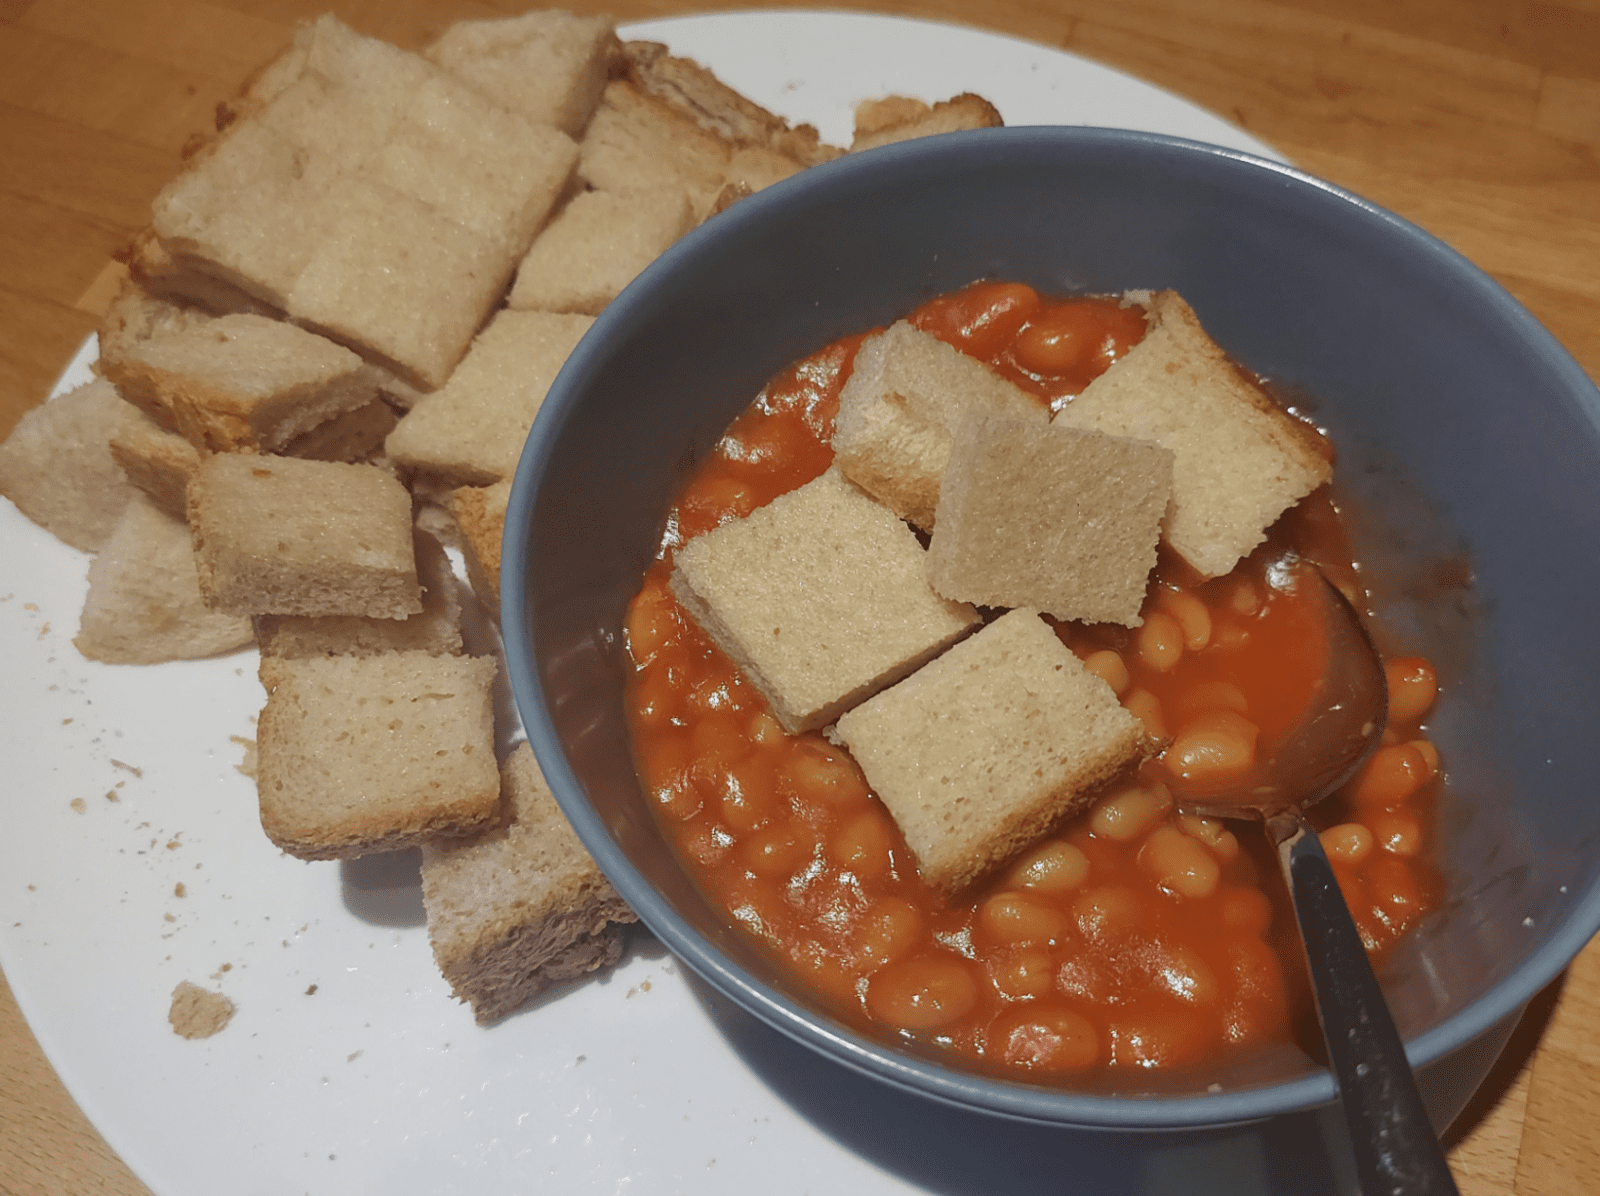 People are kicking off at this 'controversial' picture of beans on toast online, The Manc